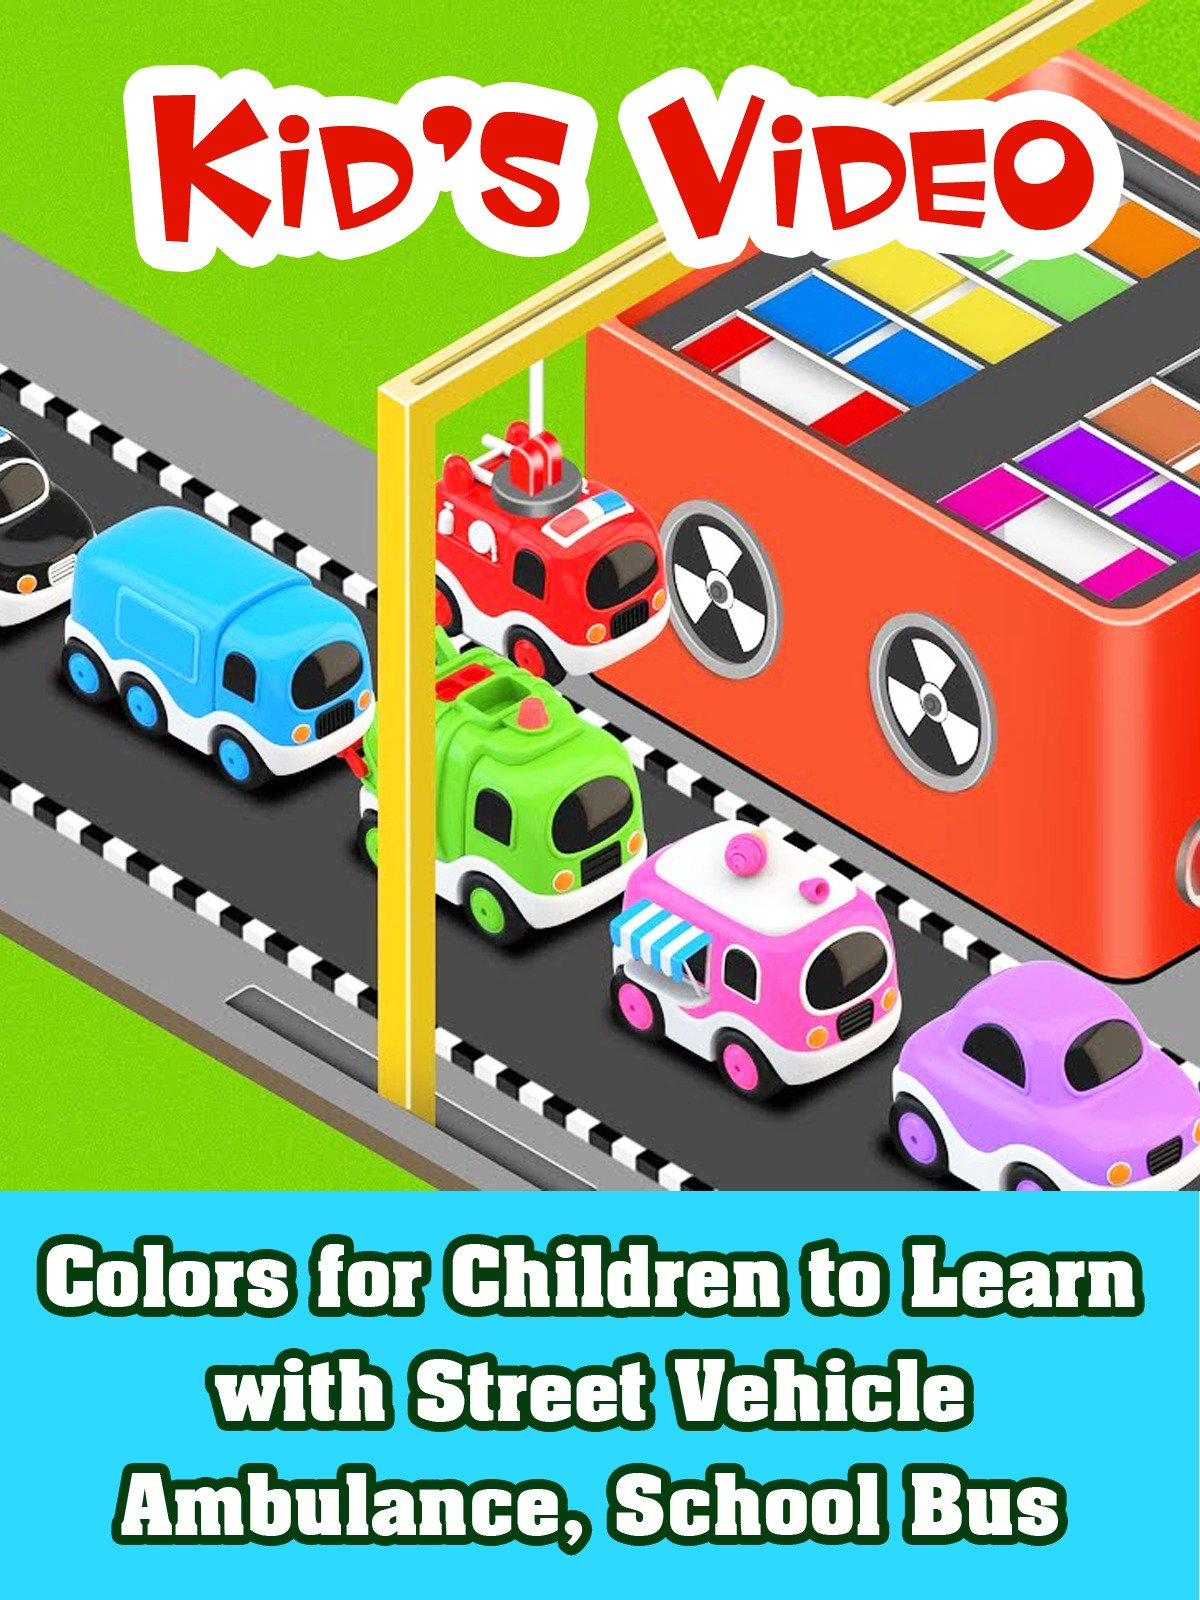 Colors for Children to Learn with Street Vehicle